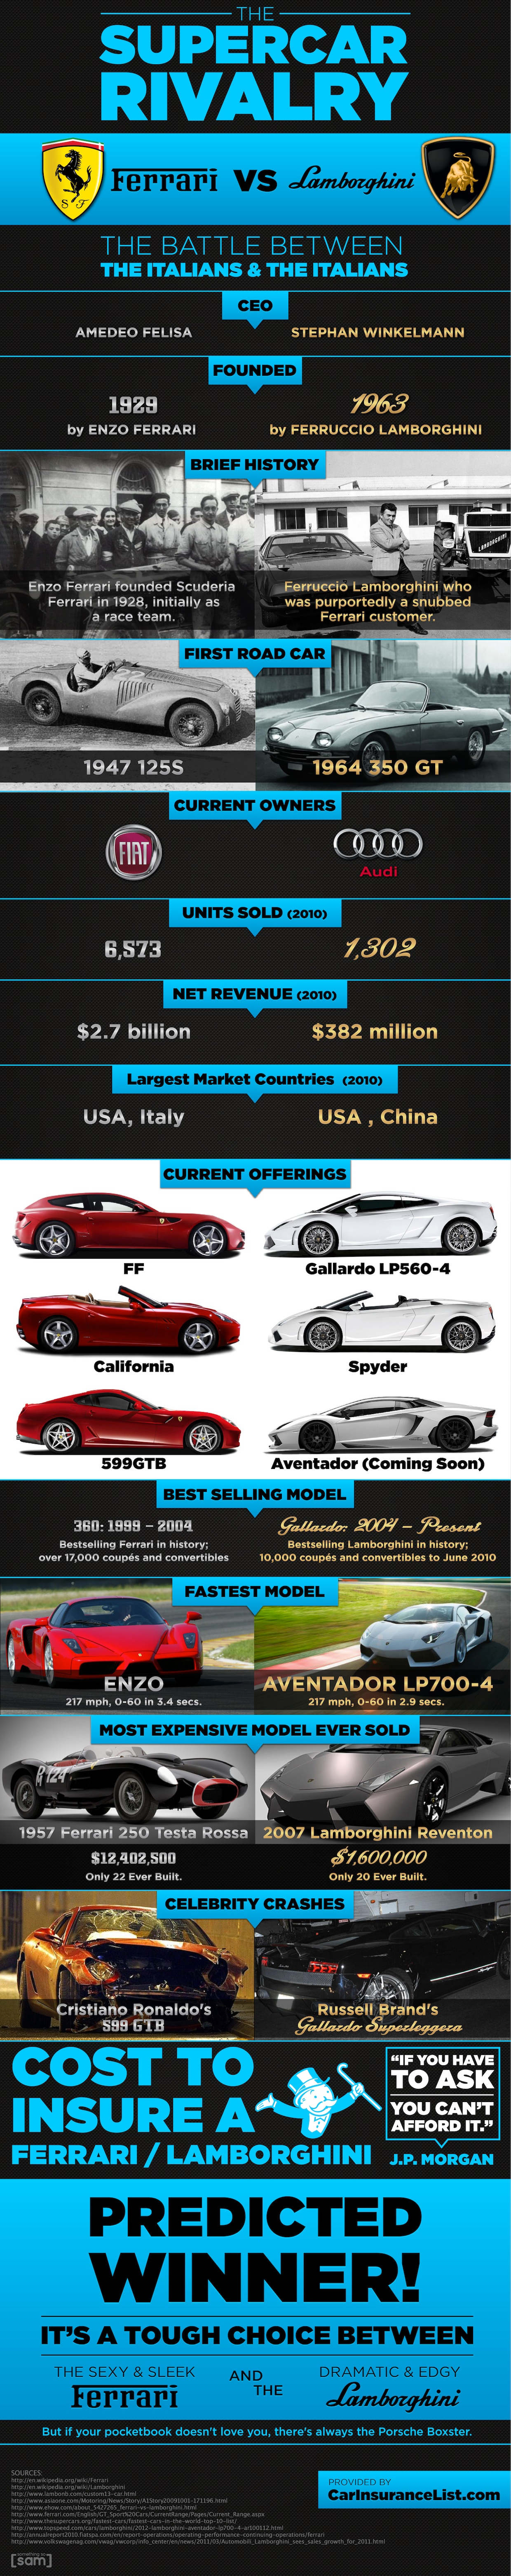 http://www.infographicsshowcase.com/wp-content/uploads/2011/09/supercar-rivalry-infographic.jpg